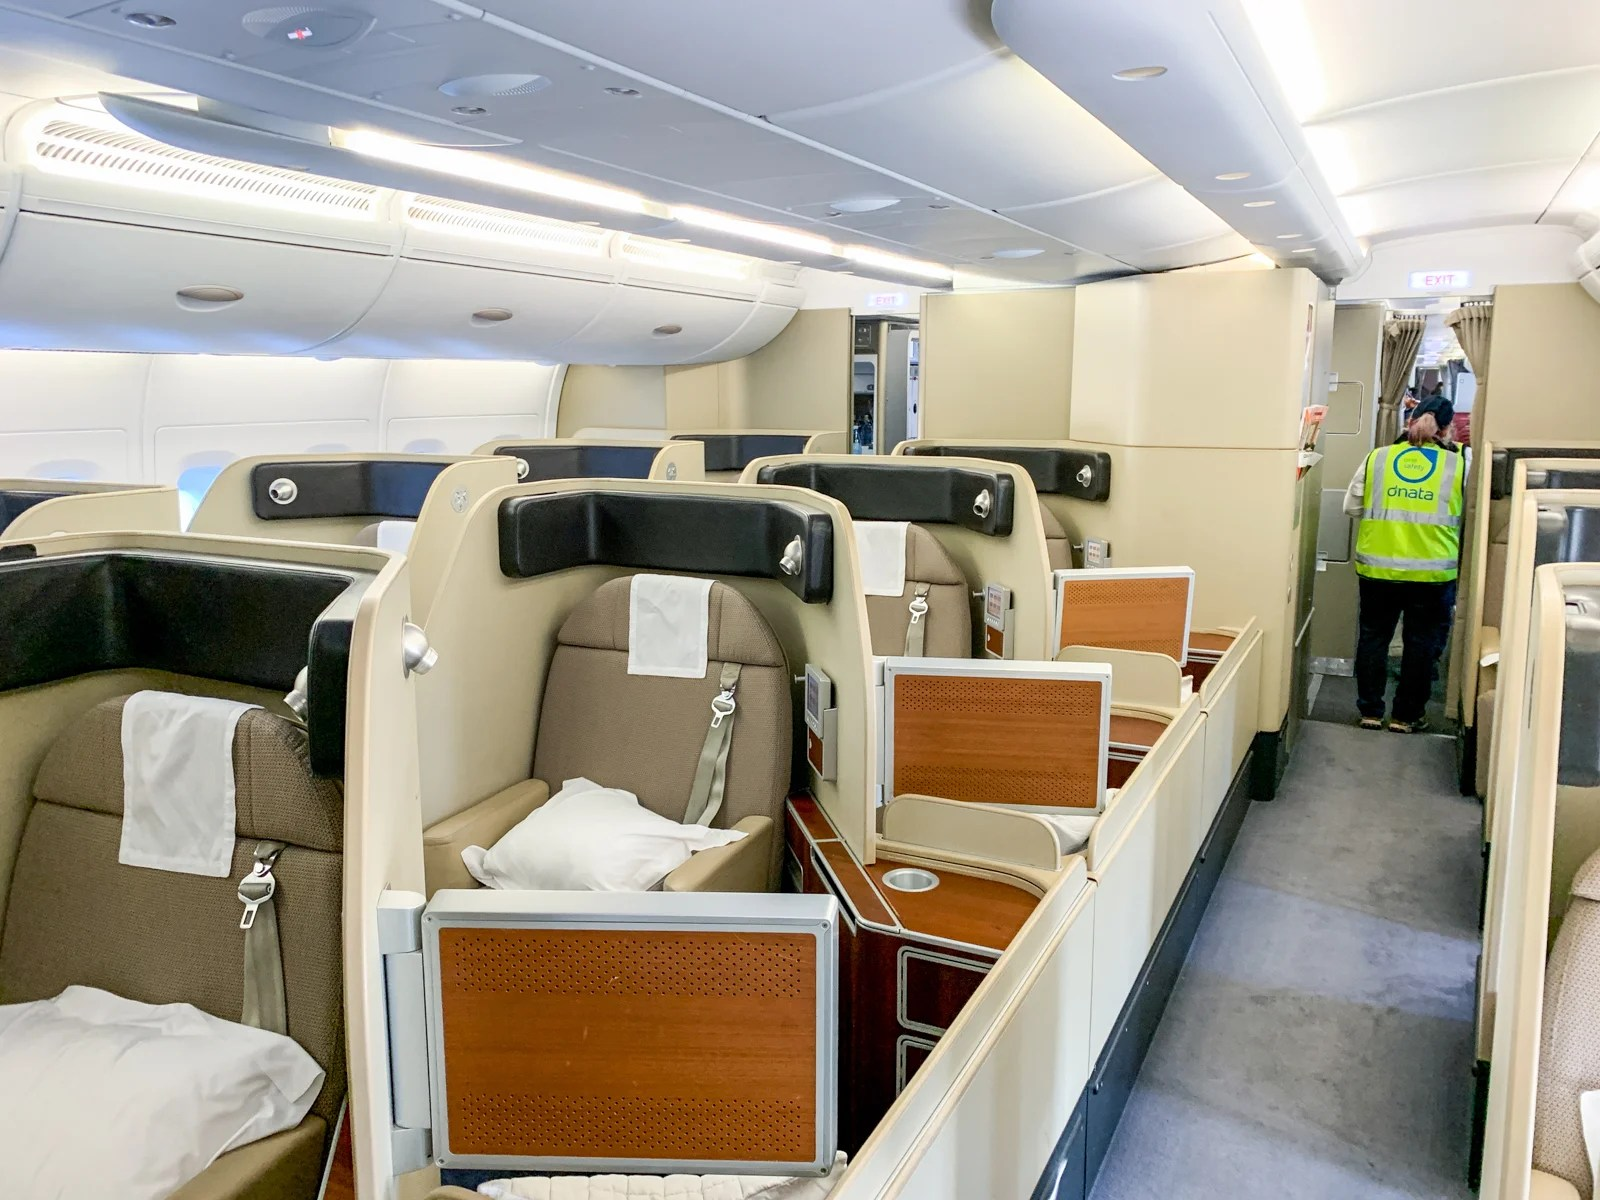 Awesome Aussie: A review of Qantas first class on the A380, Melbourne to LAX